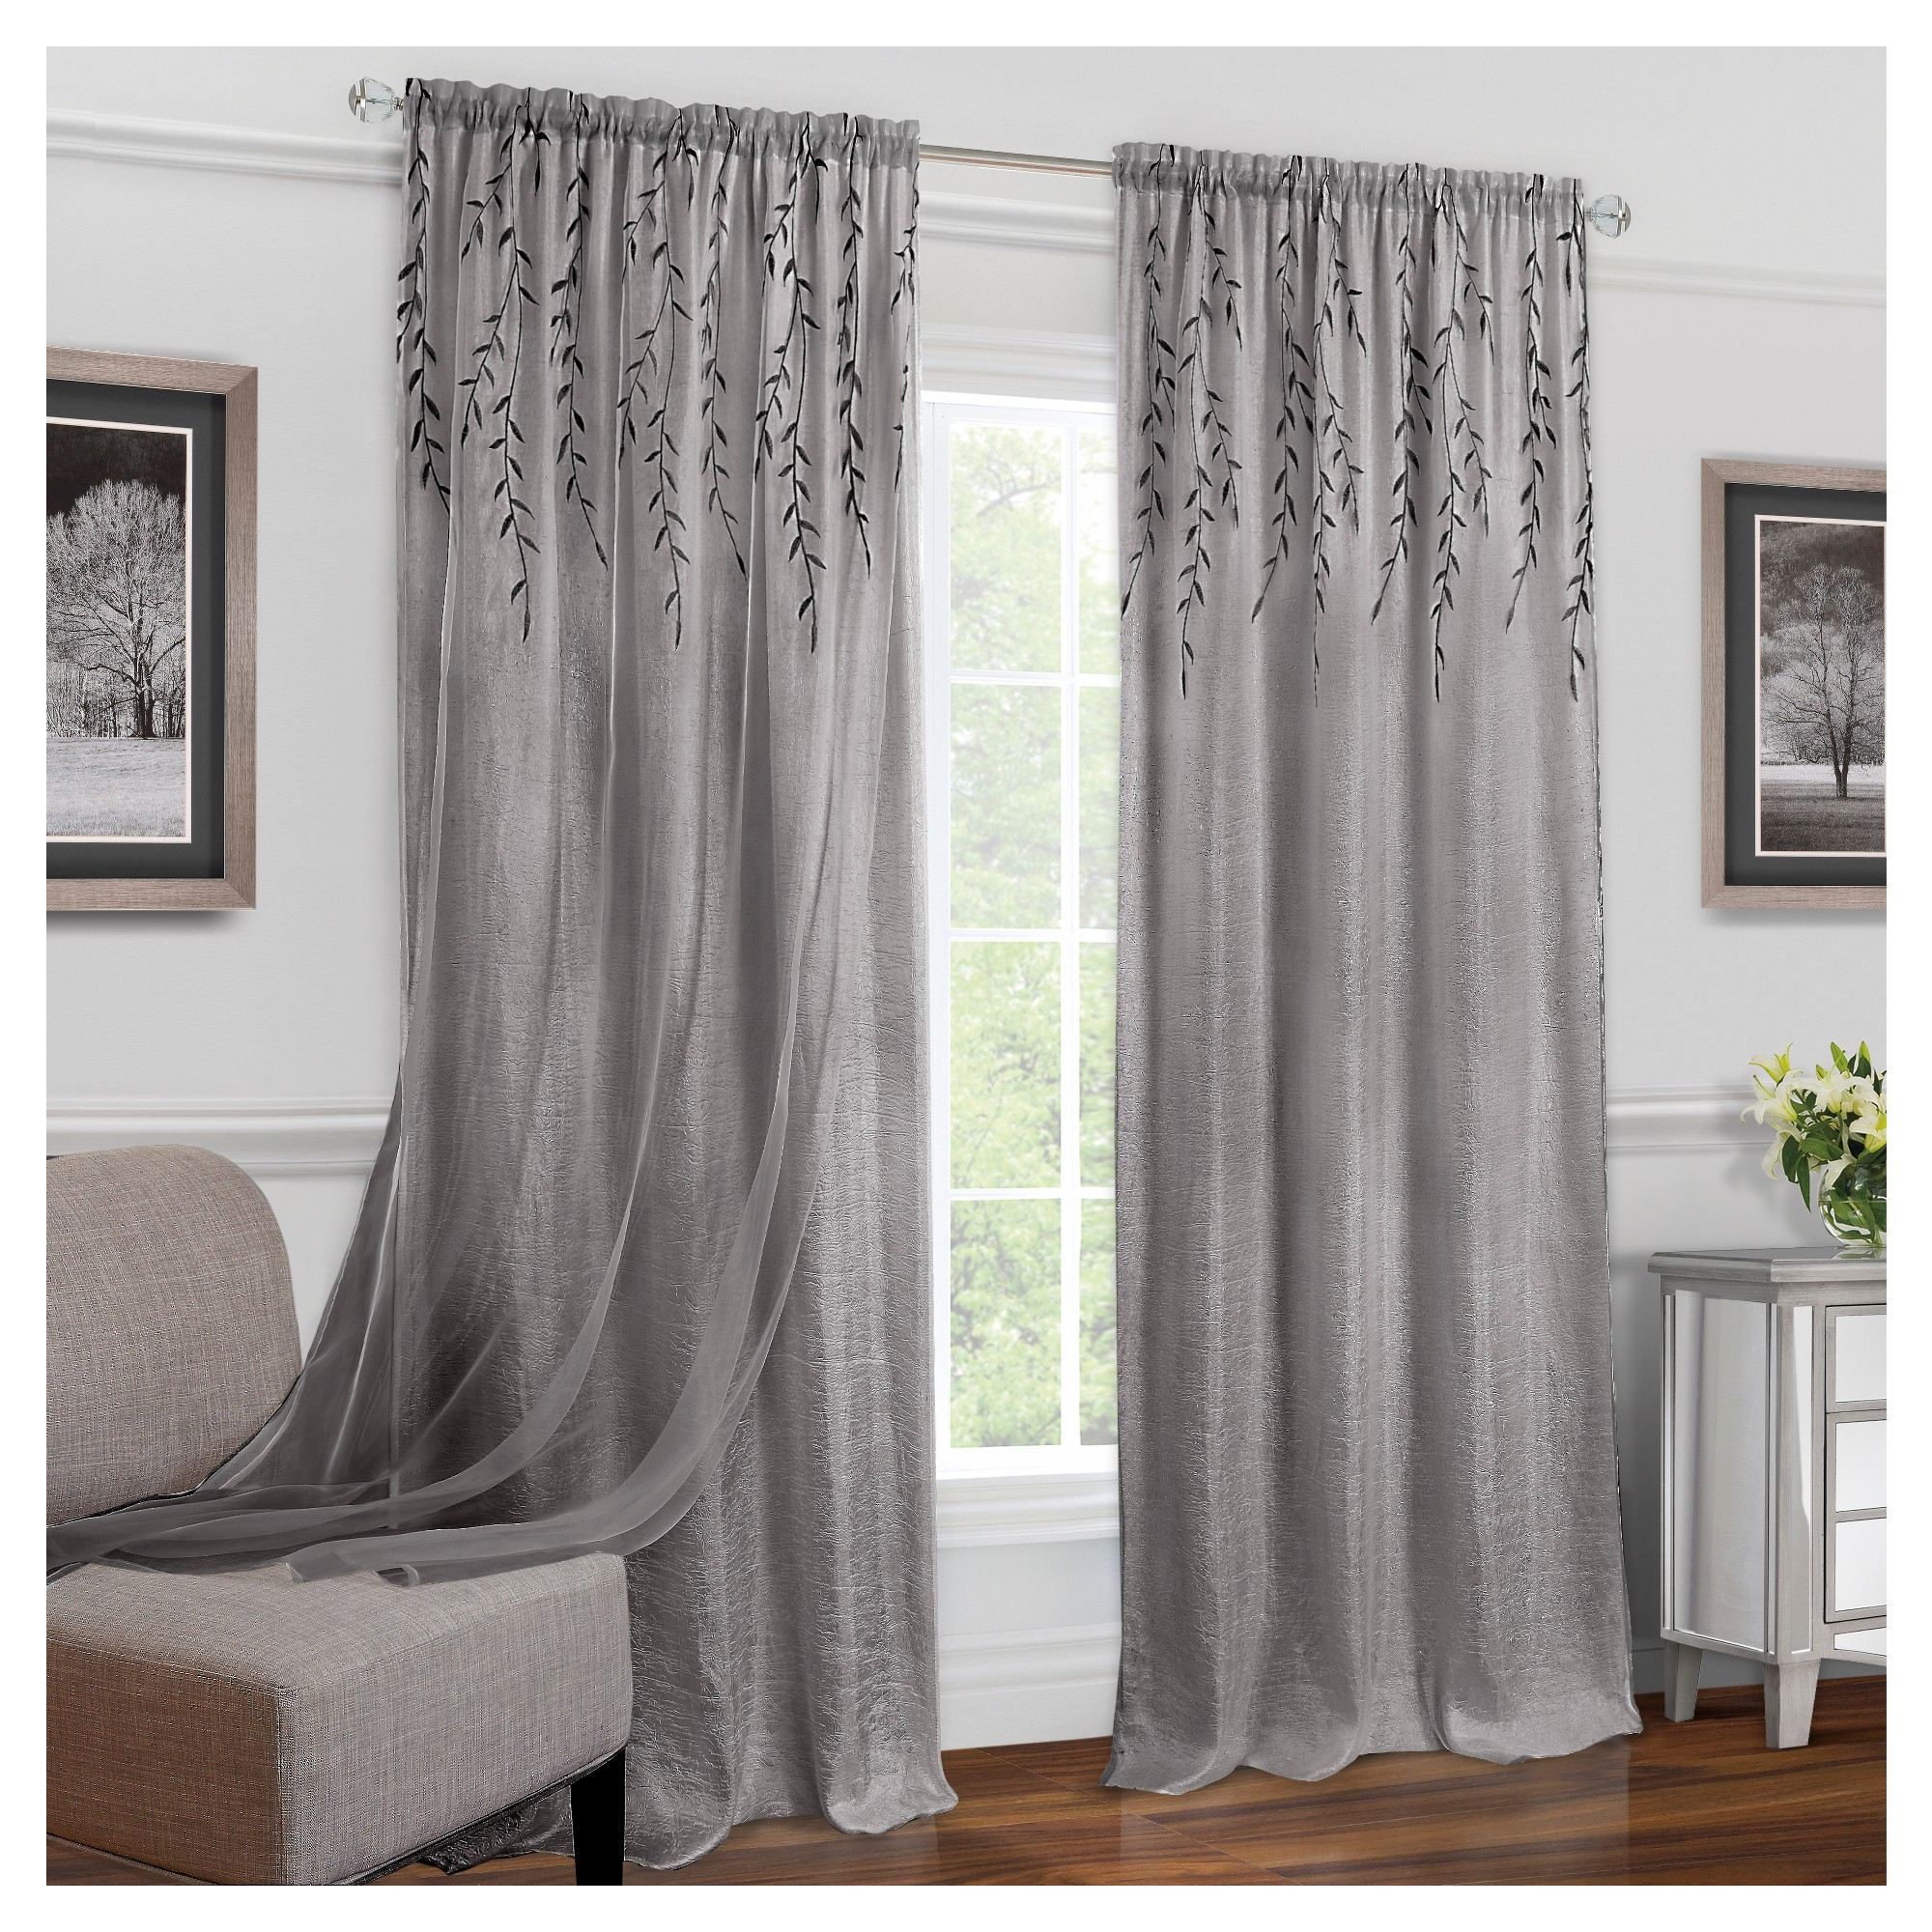 "Willow Rod Pocket Window Curtain Panel White (42""x63 Regarding Willow Rod Pocket Window Curtain Panels (View 2 of 30)"